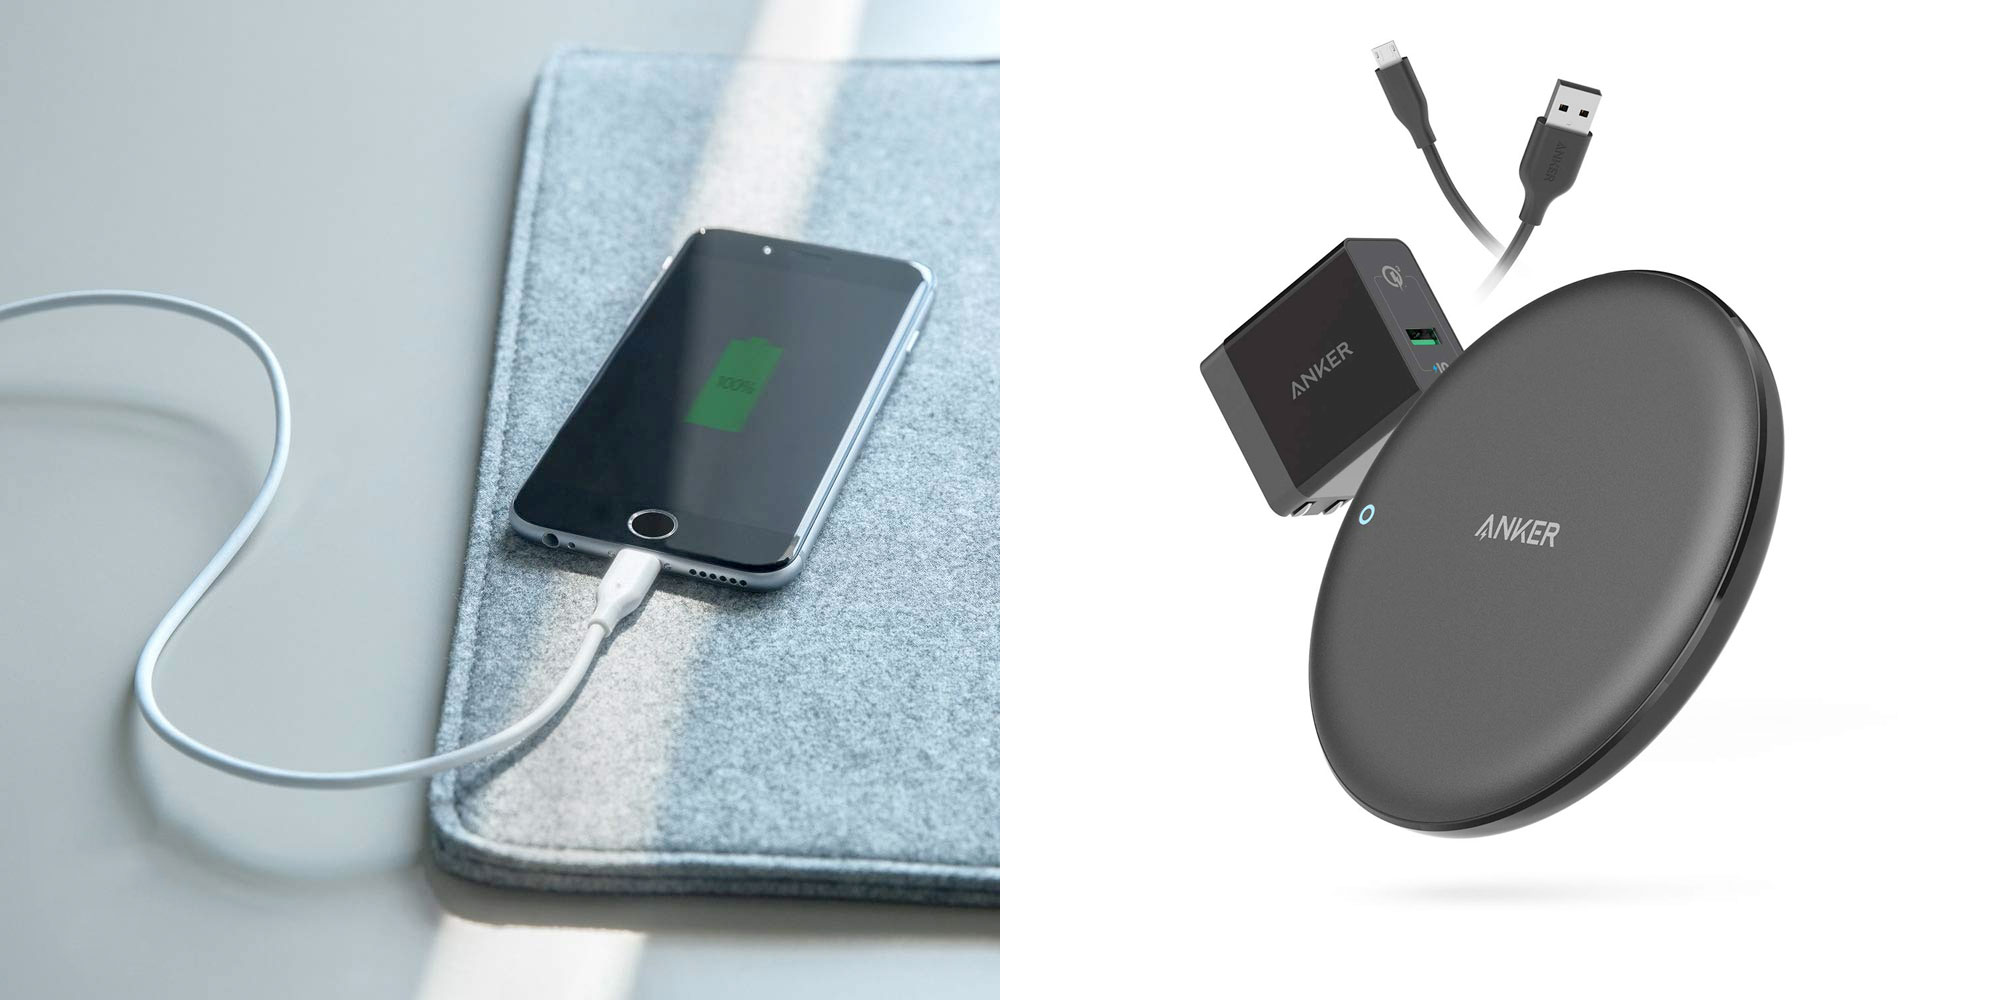 Anker's one-day sale offers MFi-certified Lightning cables, 7.5W wireless charger, more from $9